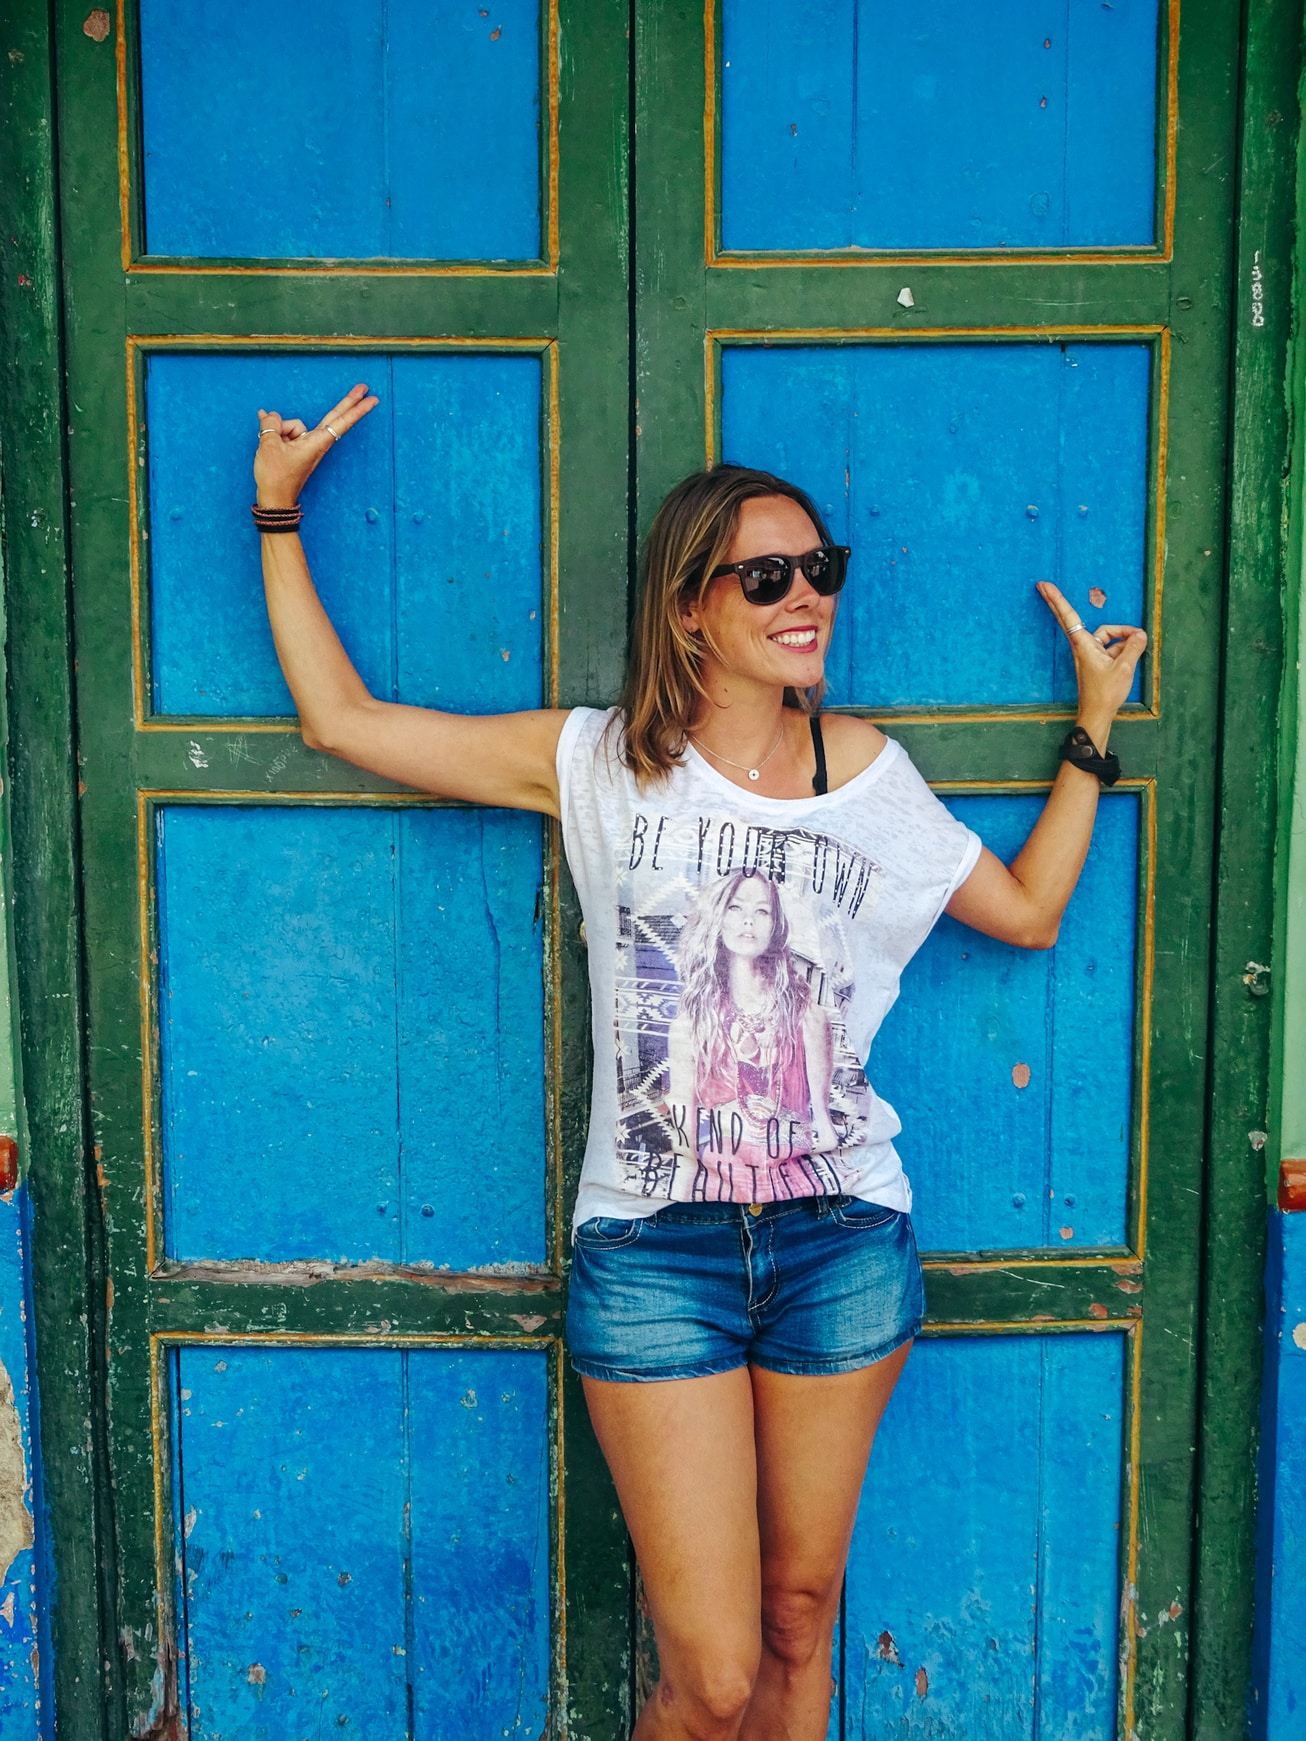 5 realizations to quit your job and travel the world